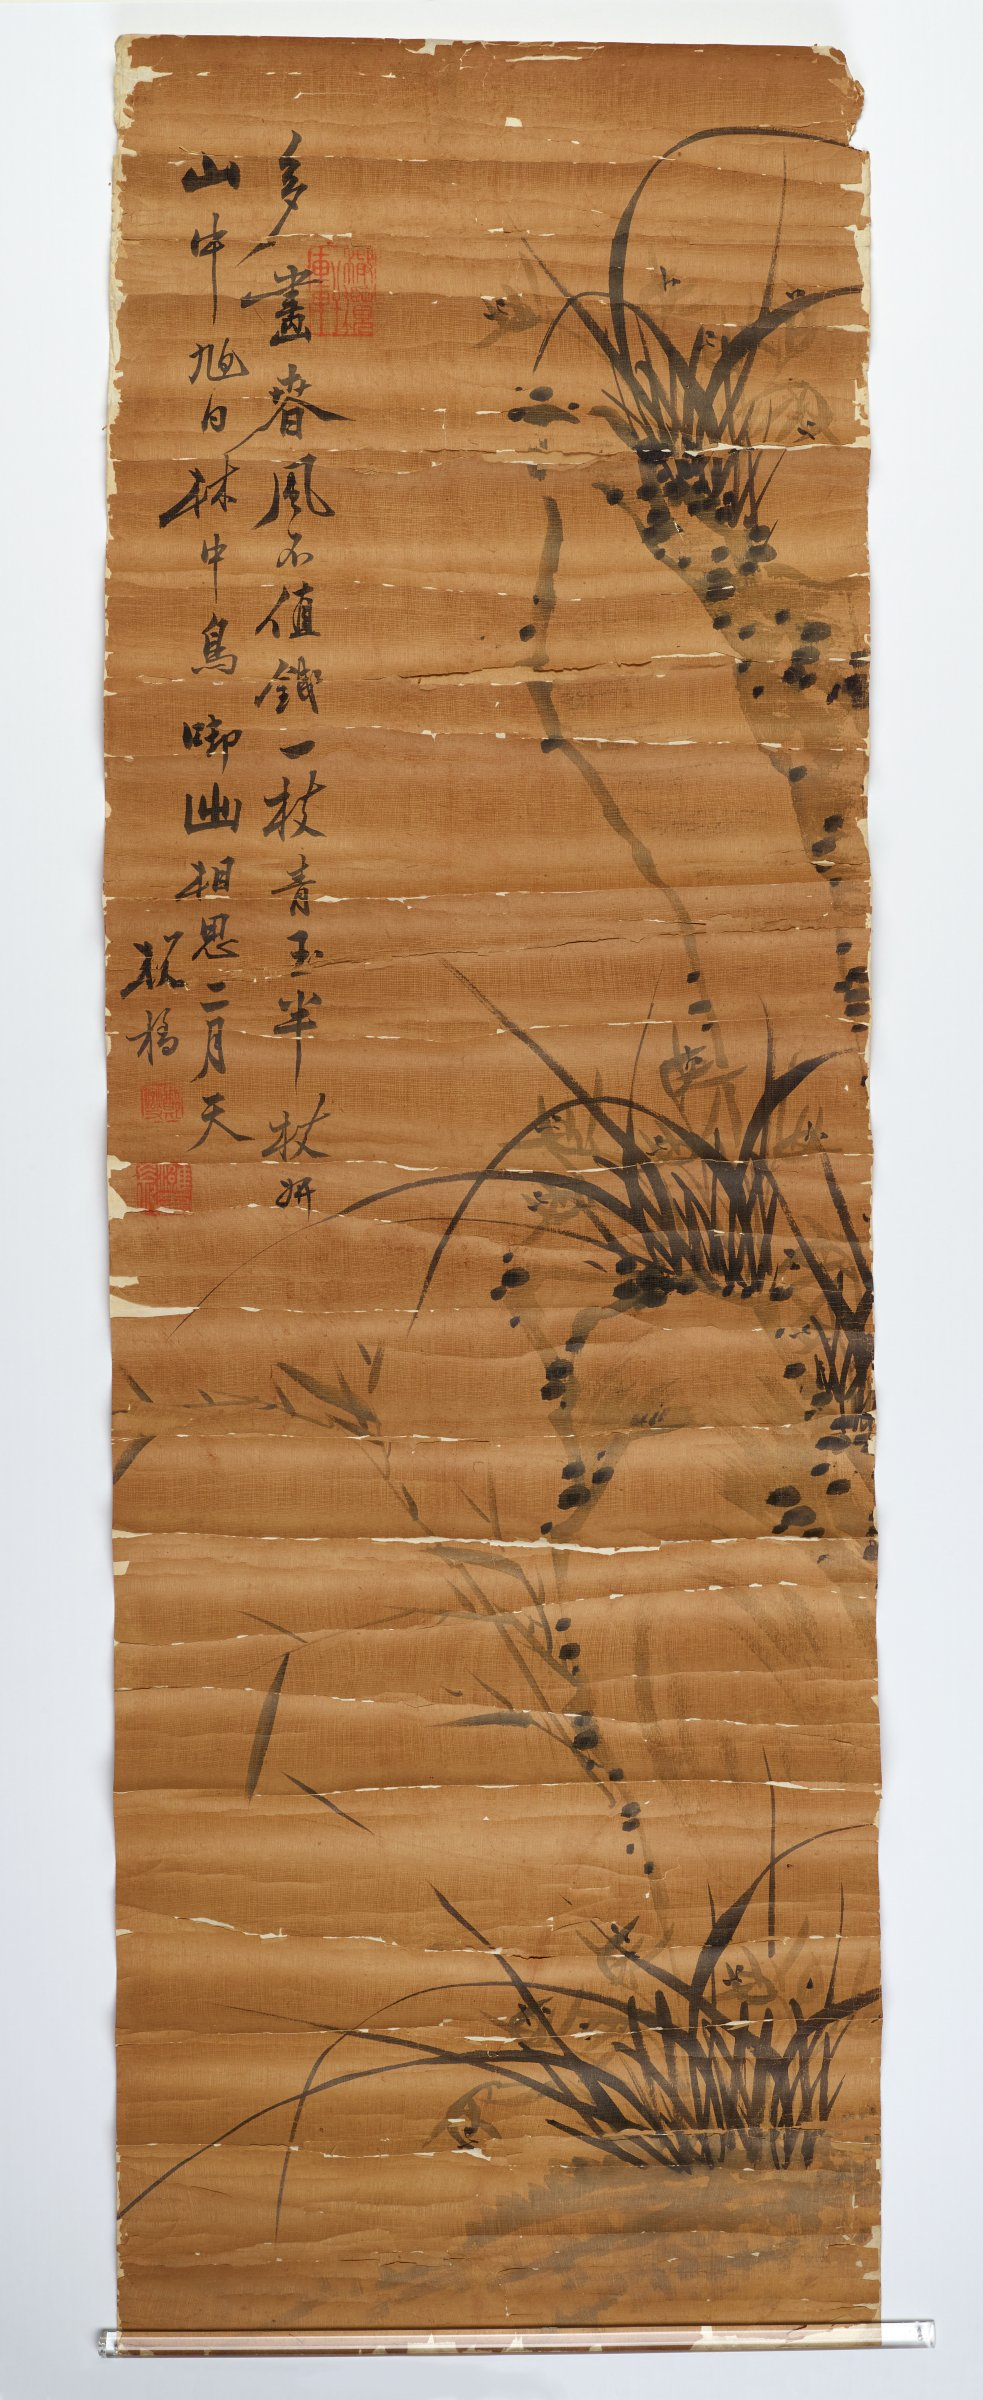 Unmounted Ink Painting of Cybidium among Rocks with Calligraphy. Three square red seals.Poor condition mounted on paper